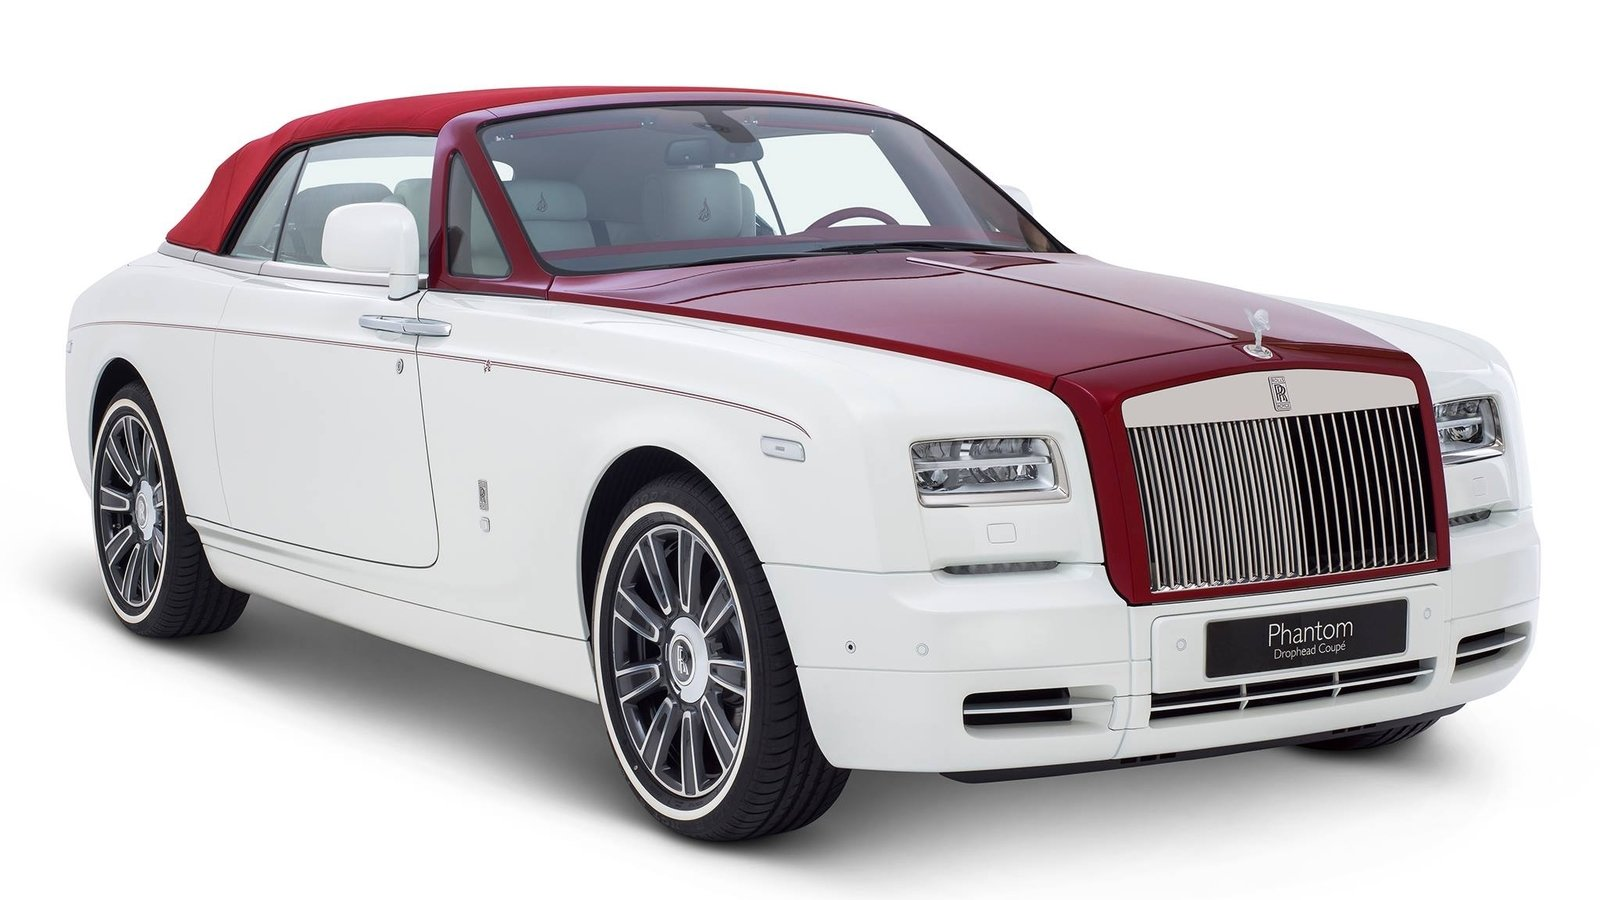 2017 rolls royce phantom drophead coupe inspired by desert rose review gallery top speed. Black Bedroom Furniture Sets. Home Design Ideas